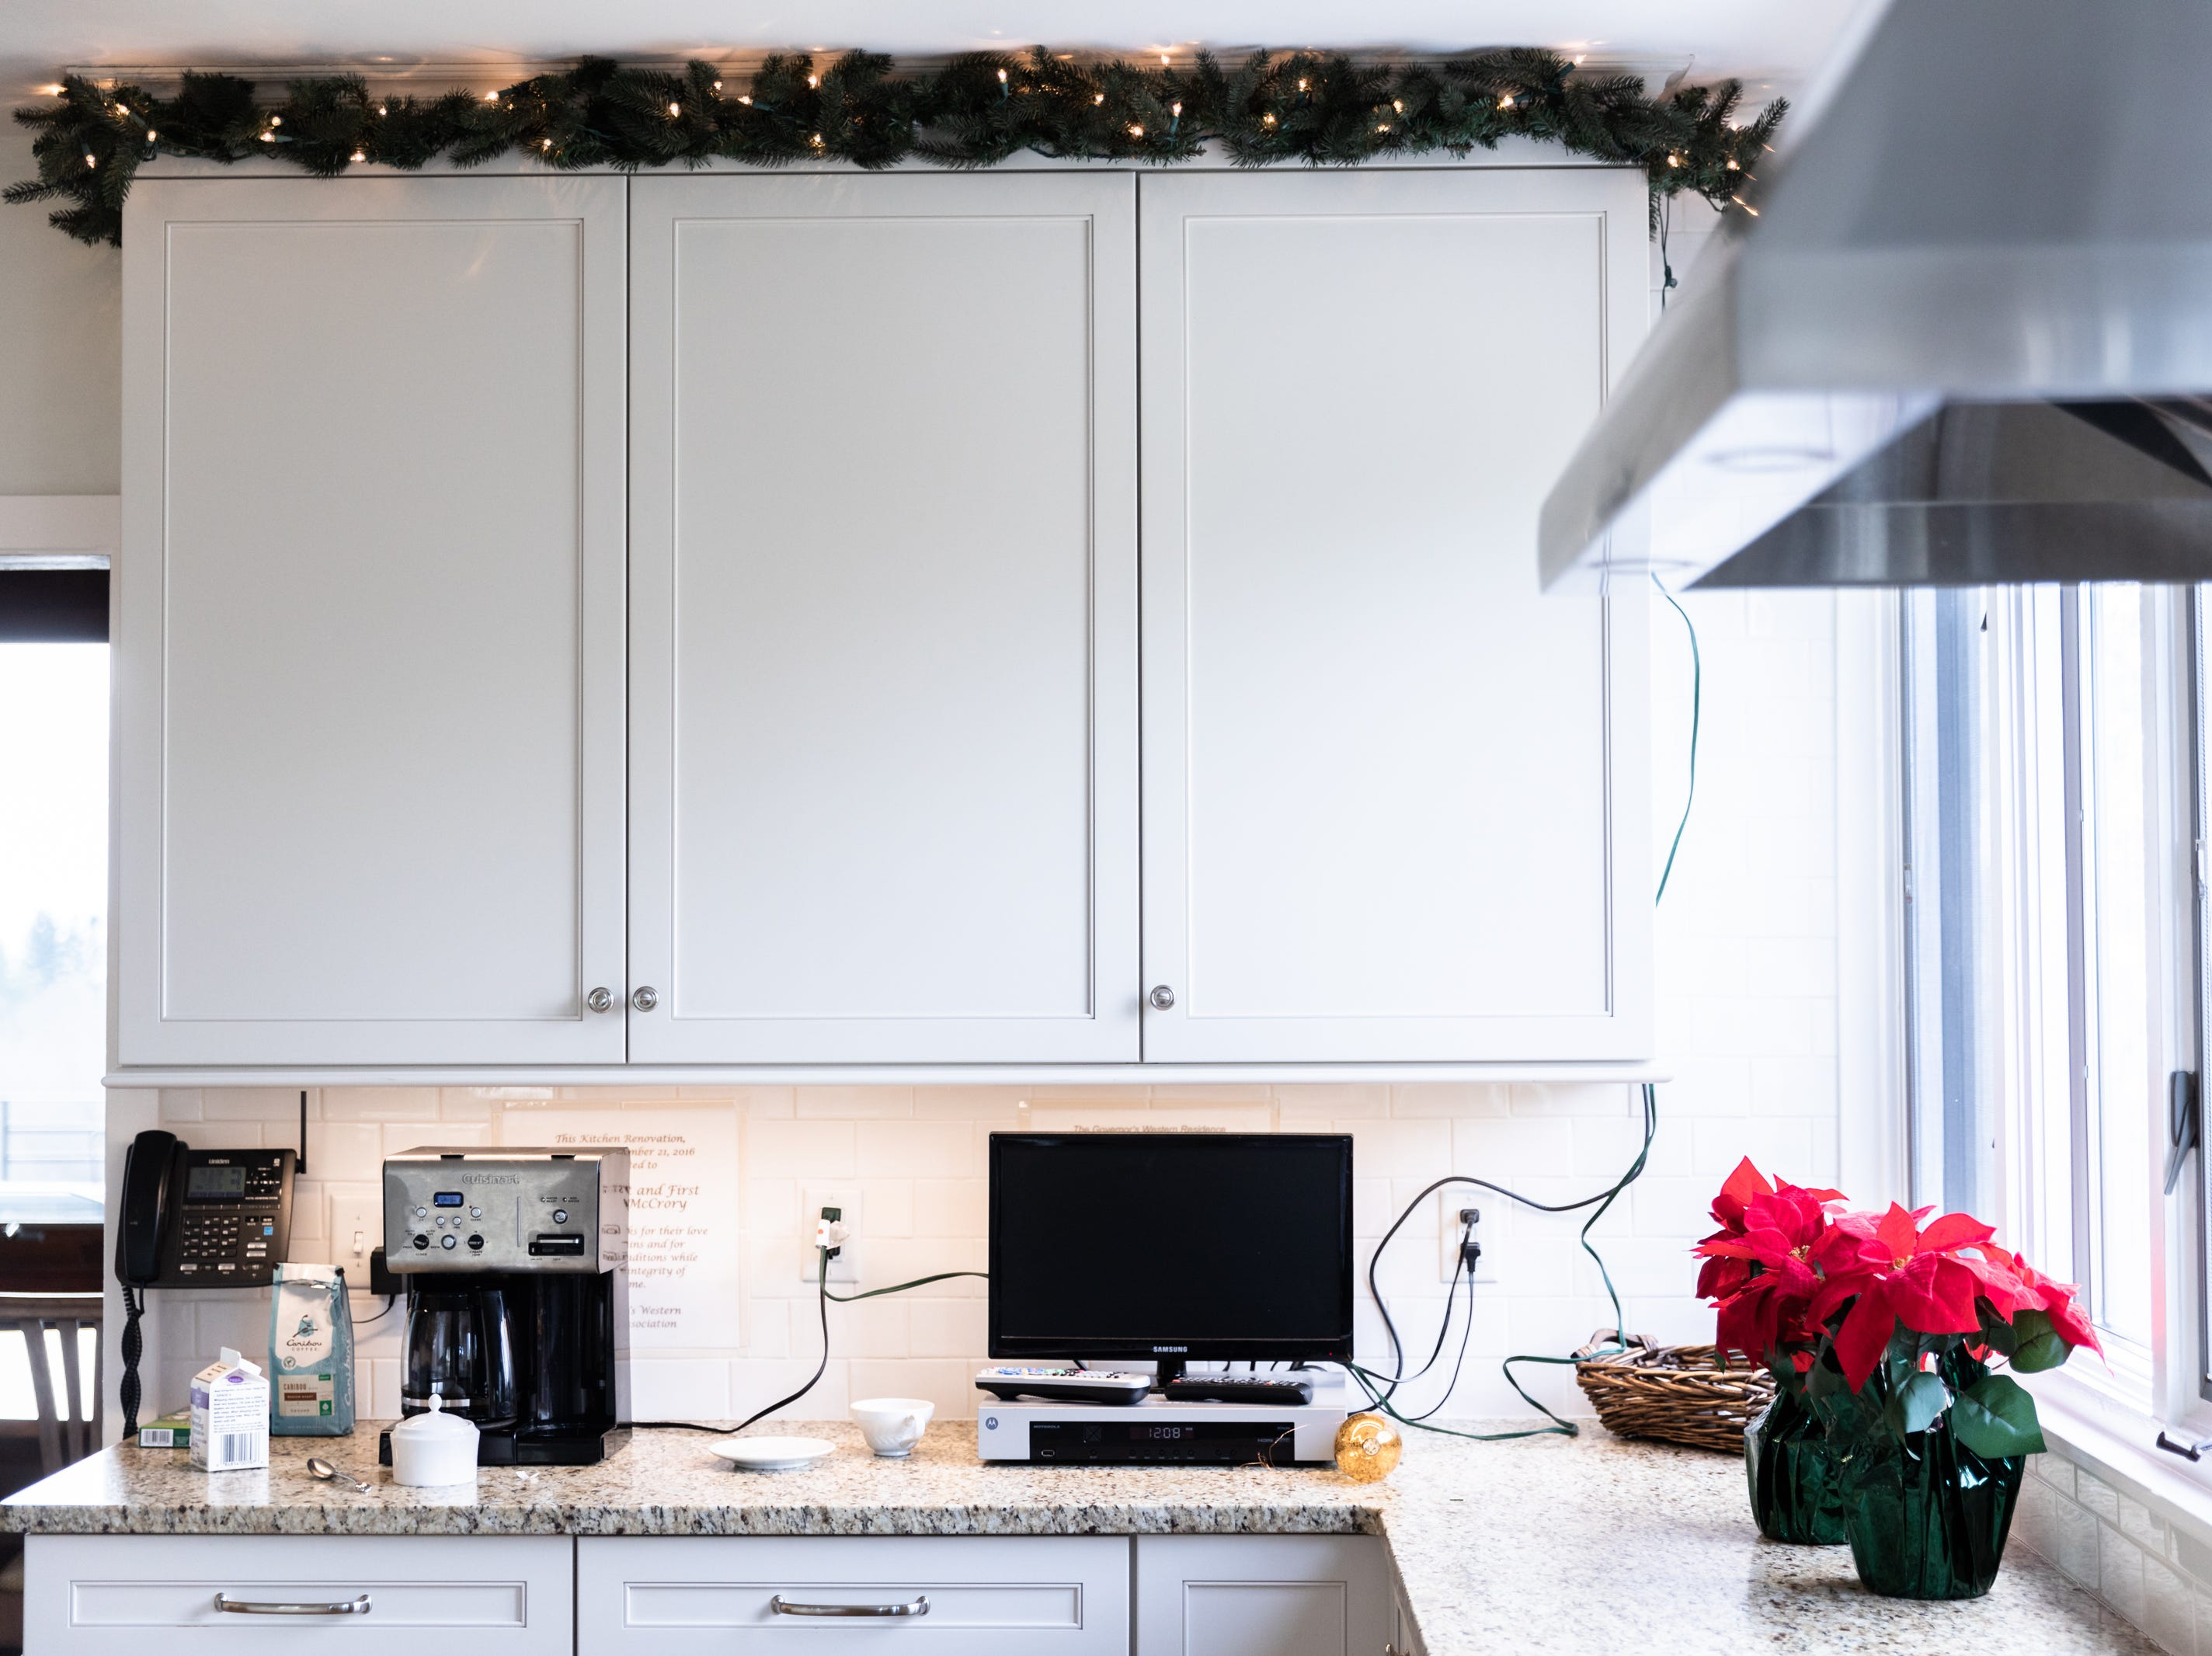 The kitchen in the Governor's Western Residence on Patton Mountain Road in Asheville, decorated for the holidays.